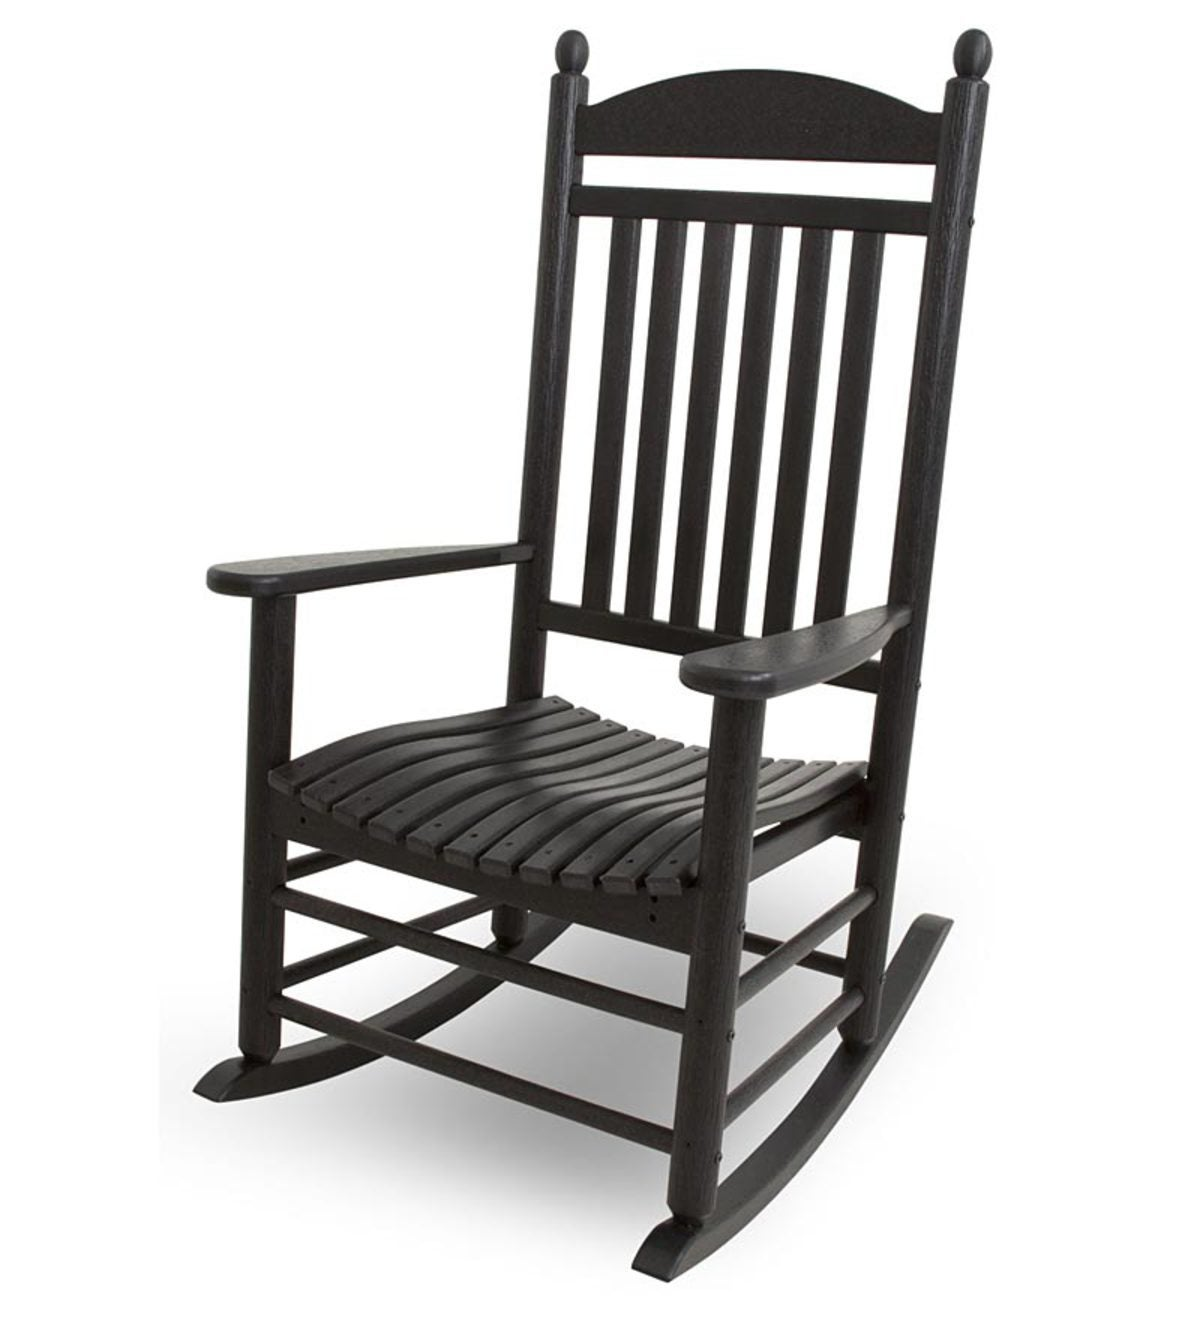 Outdoor POLYWOOD® Jefferson Rocking Chair - Black